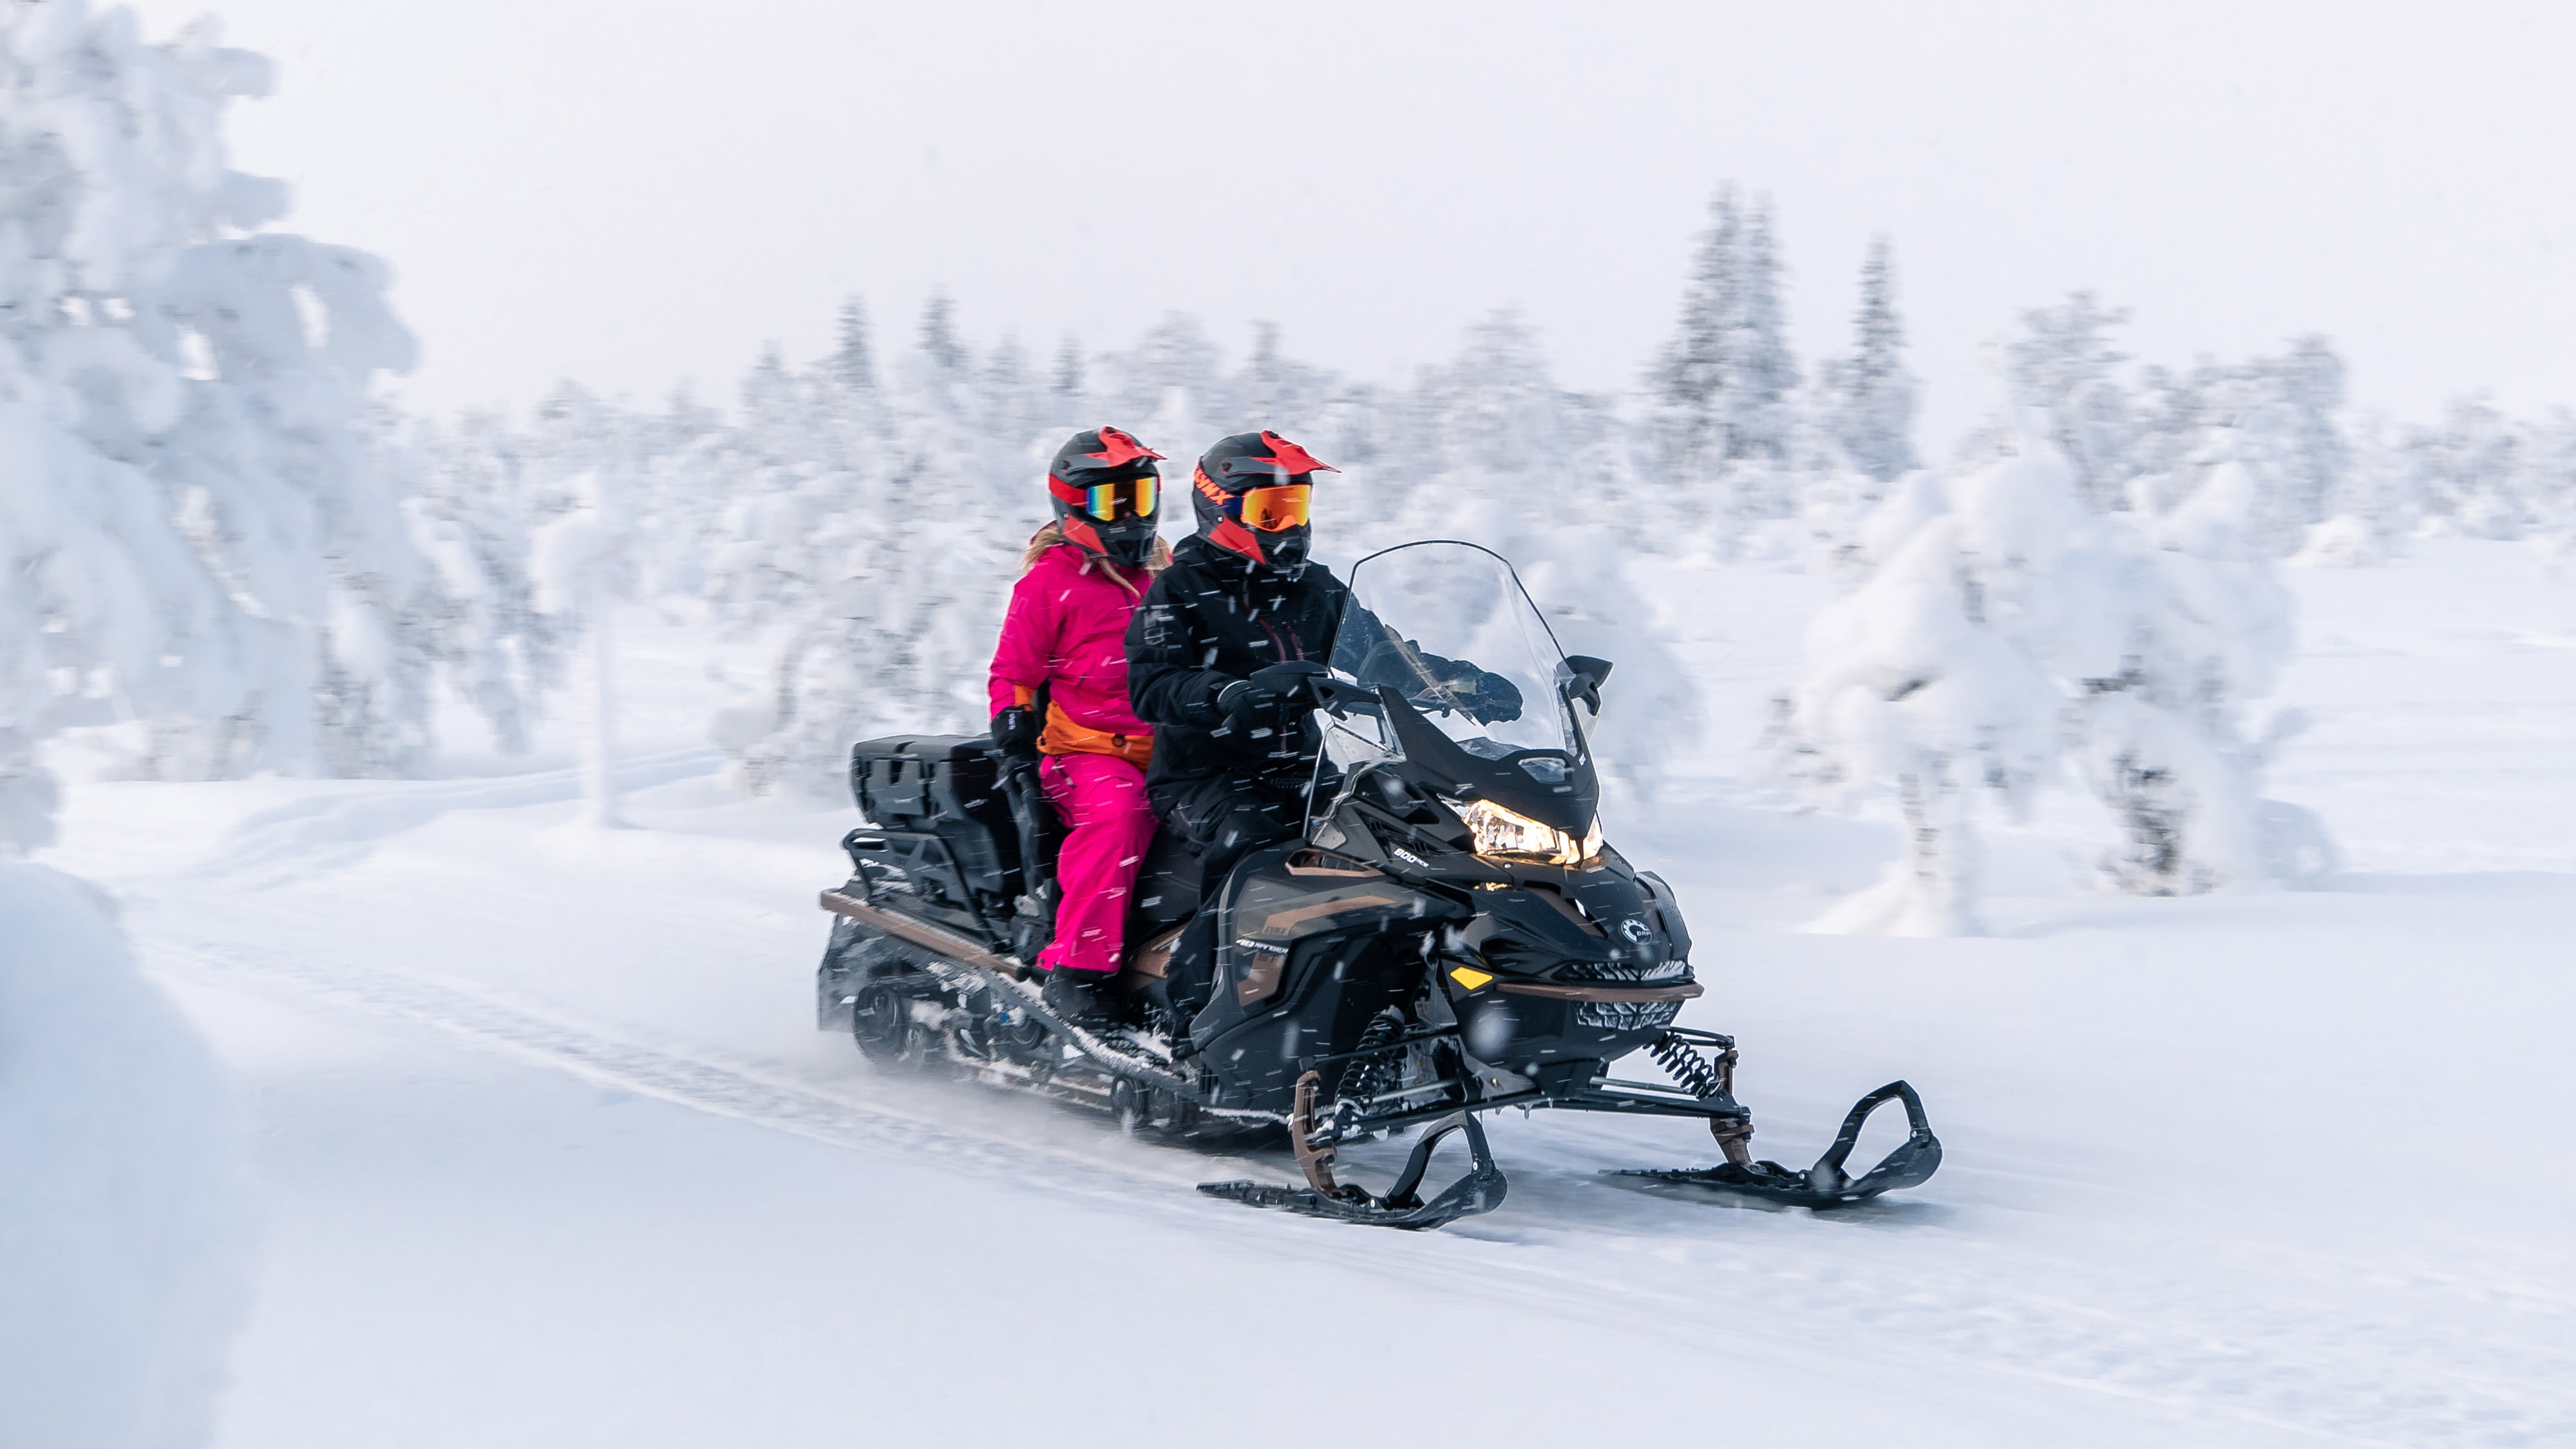 LYNX-MY22-49R-PRO-600R-Ride-Through-Heavy-Snow-RGB.jpg Lynx 49 Ranger snowmobile riding in varied terrains